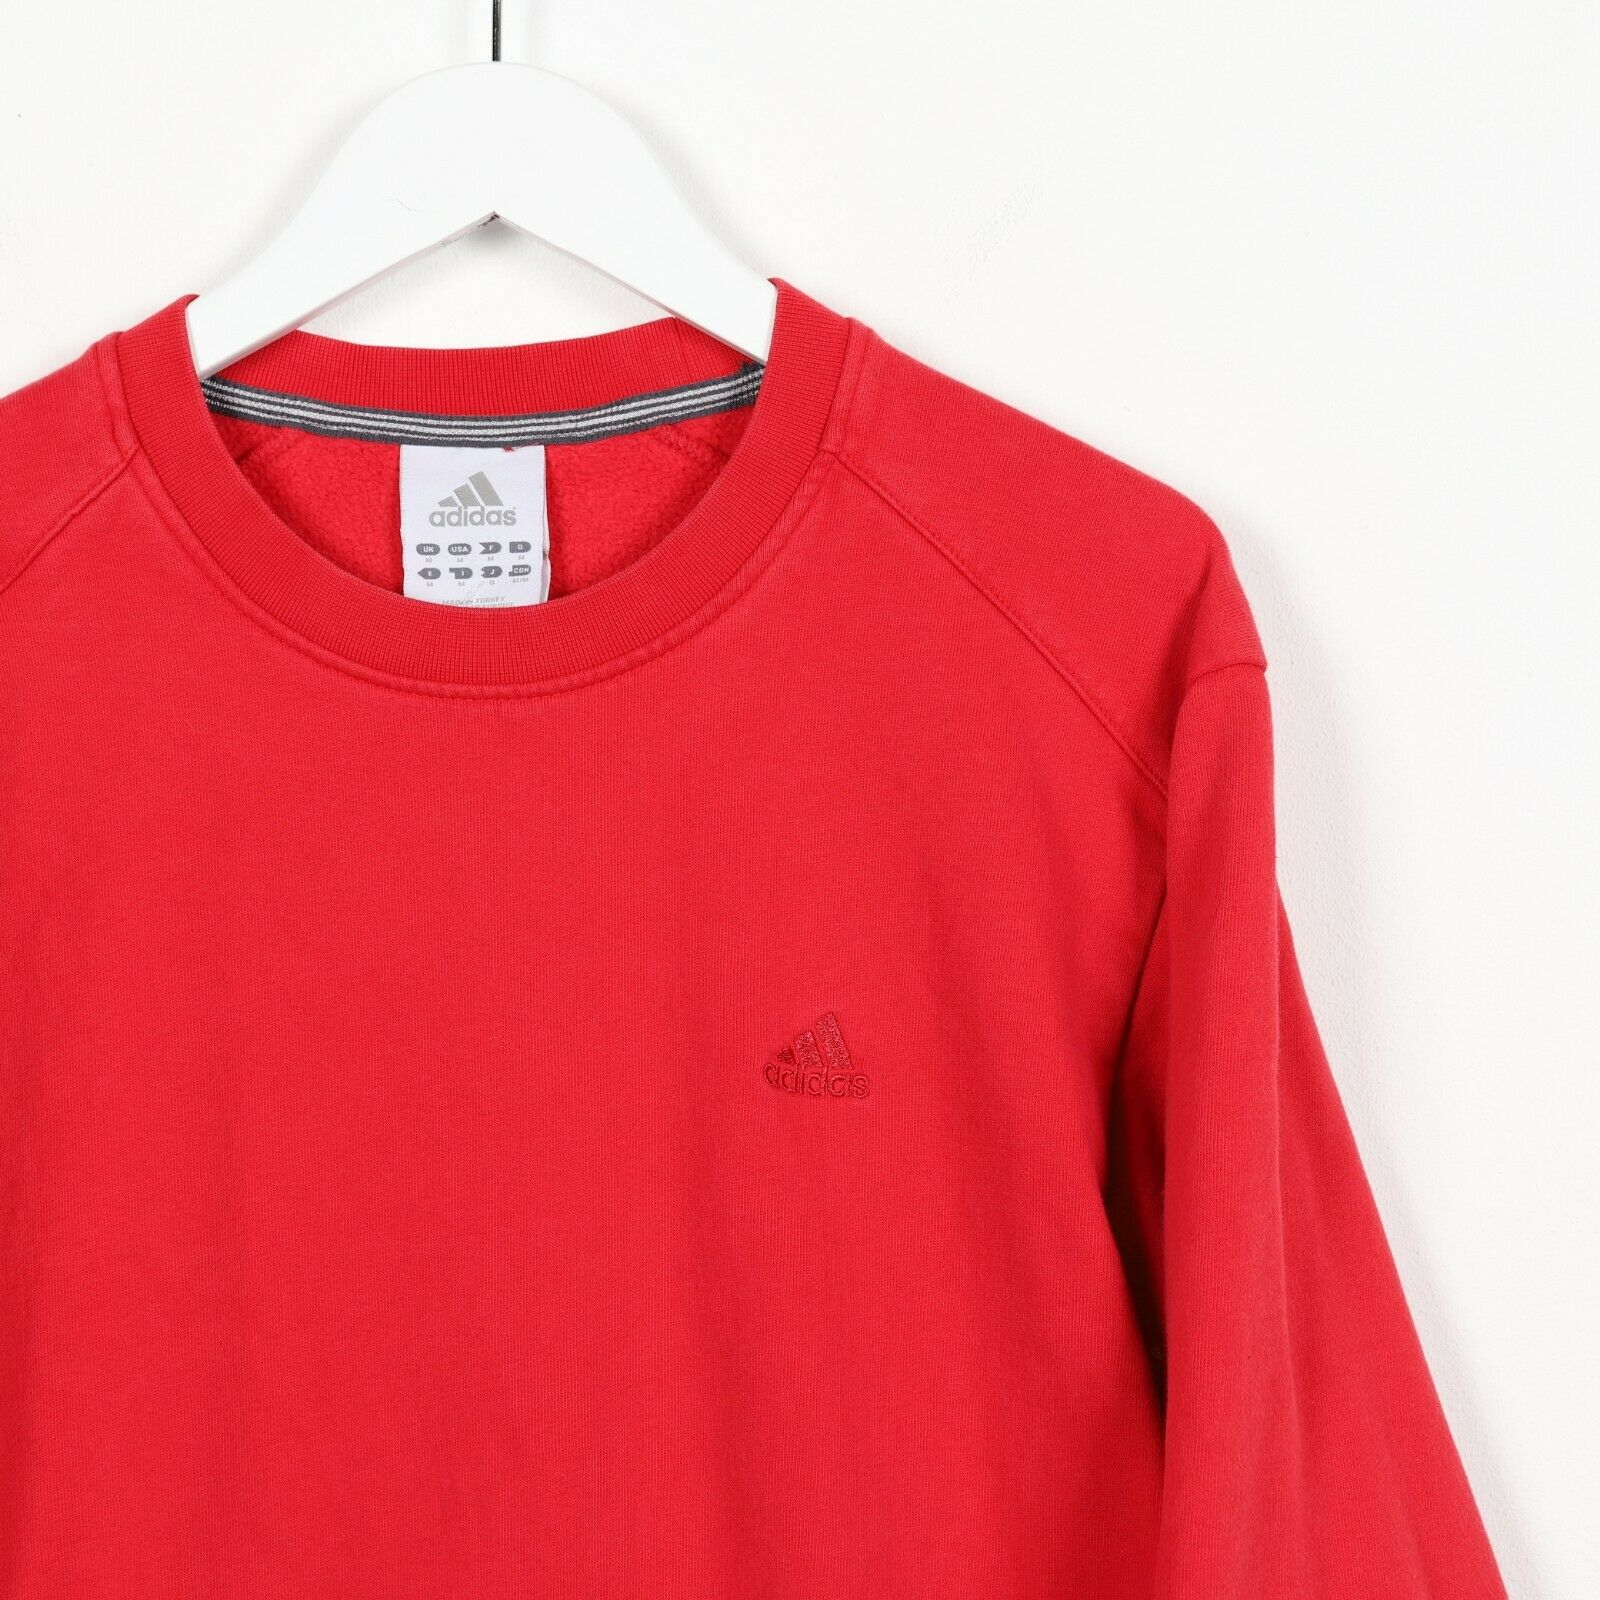 Vintage ADIDAS Small Logo Sweatshirt Jumper Red Medium M